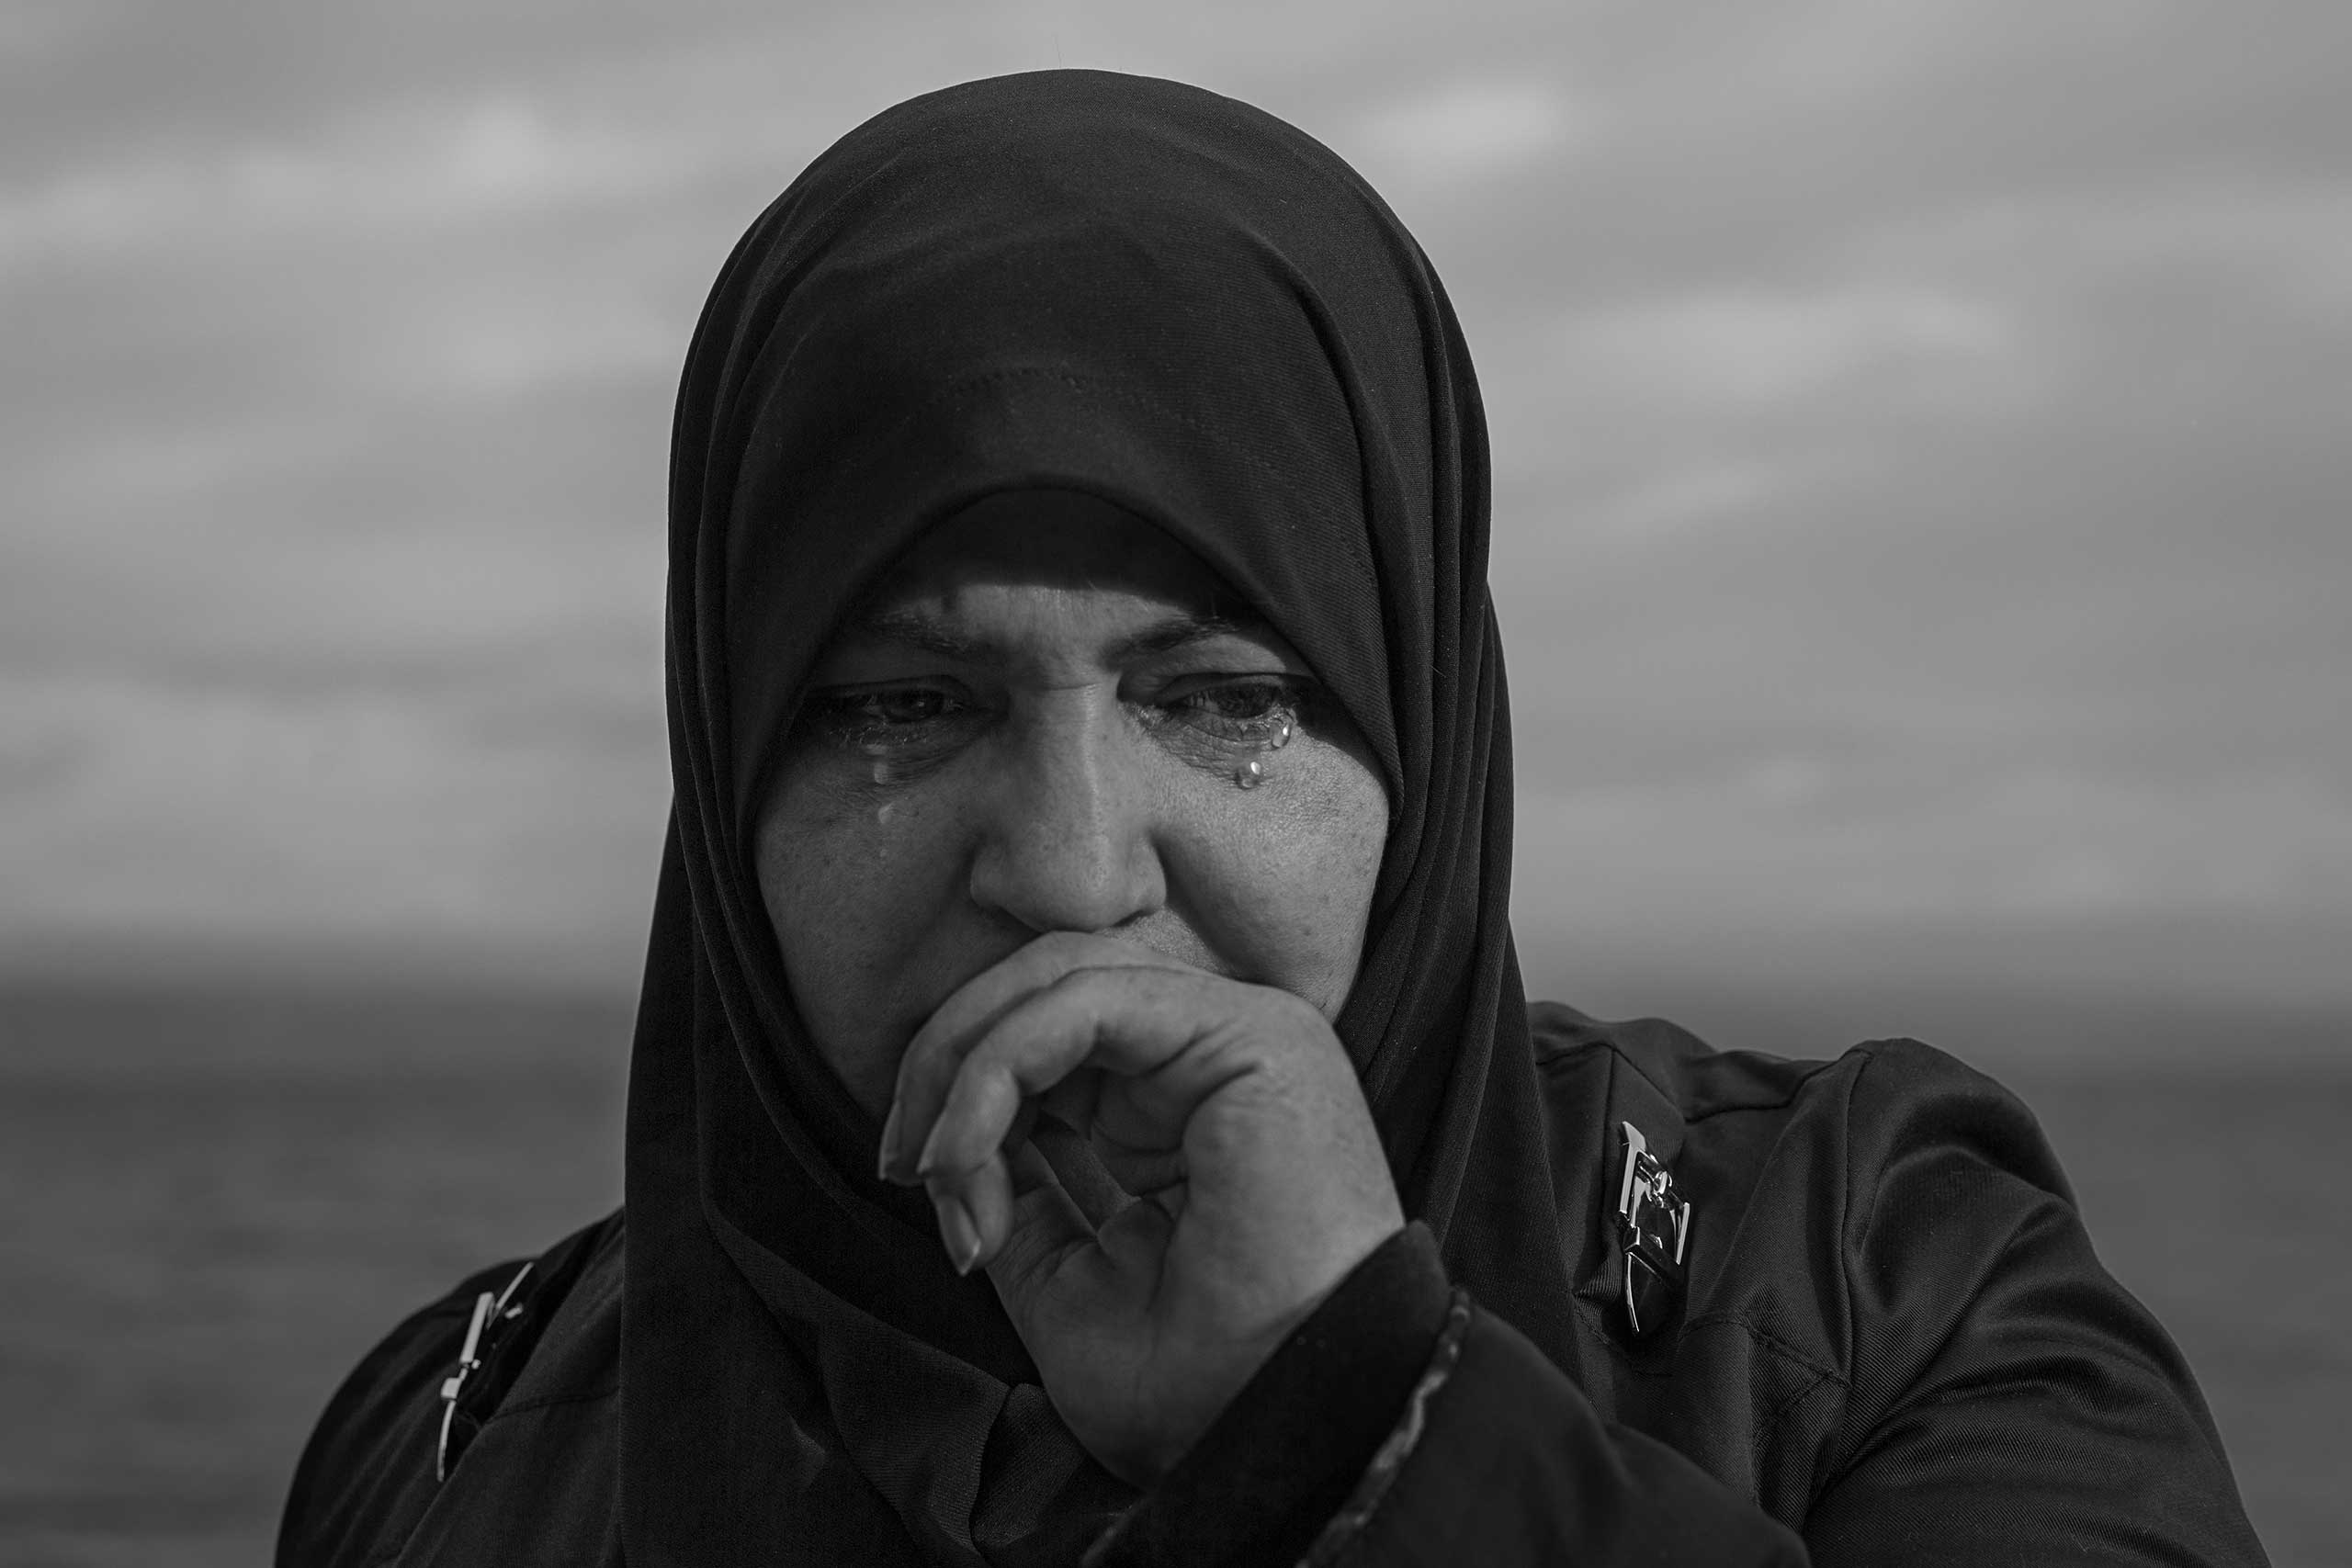 A woman cries after her boat arrives on the island of Lesbos, Greece.